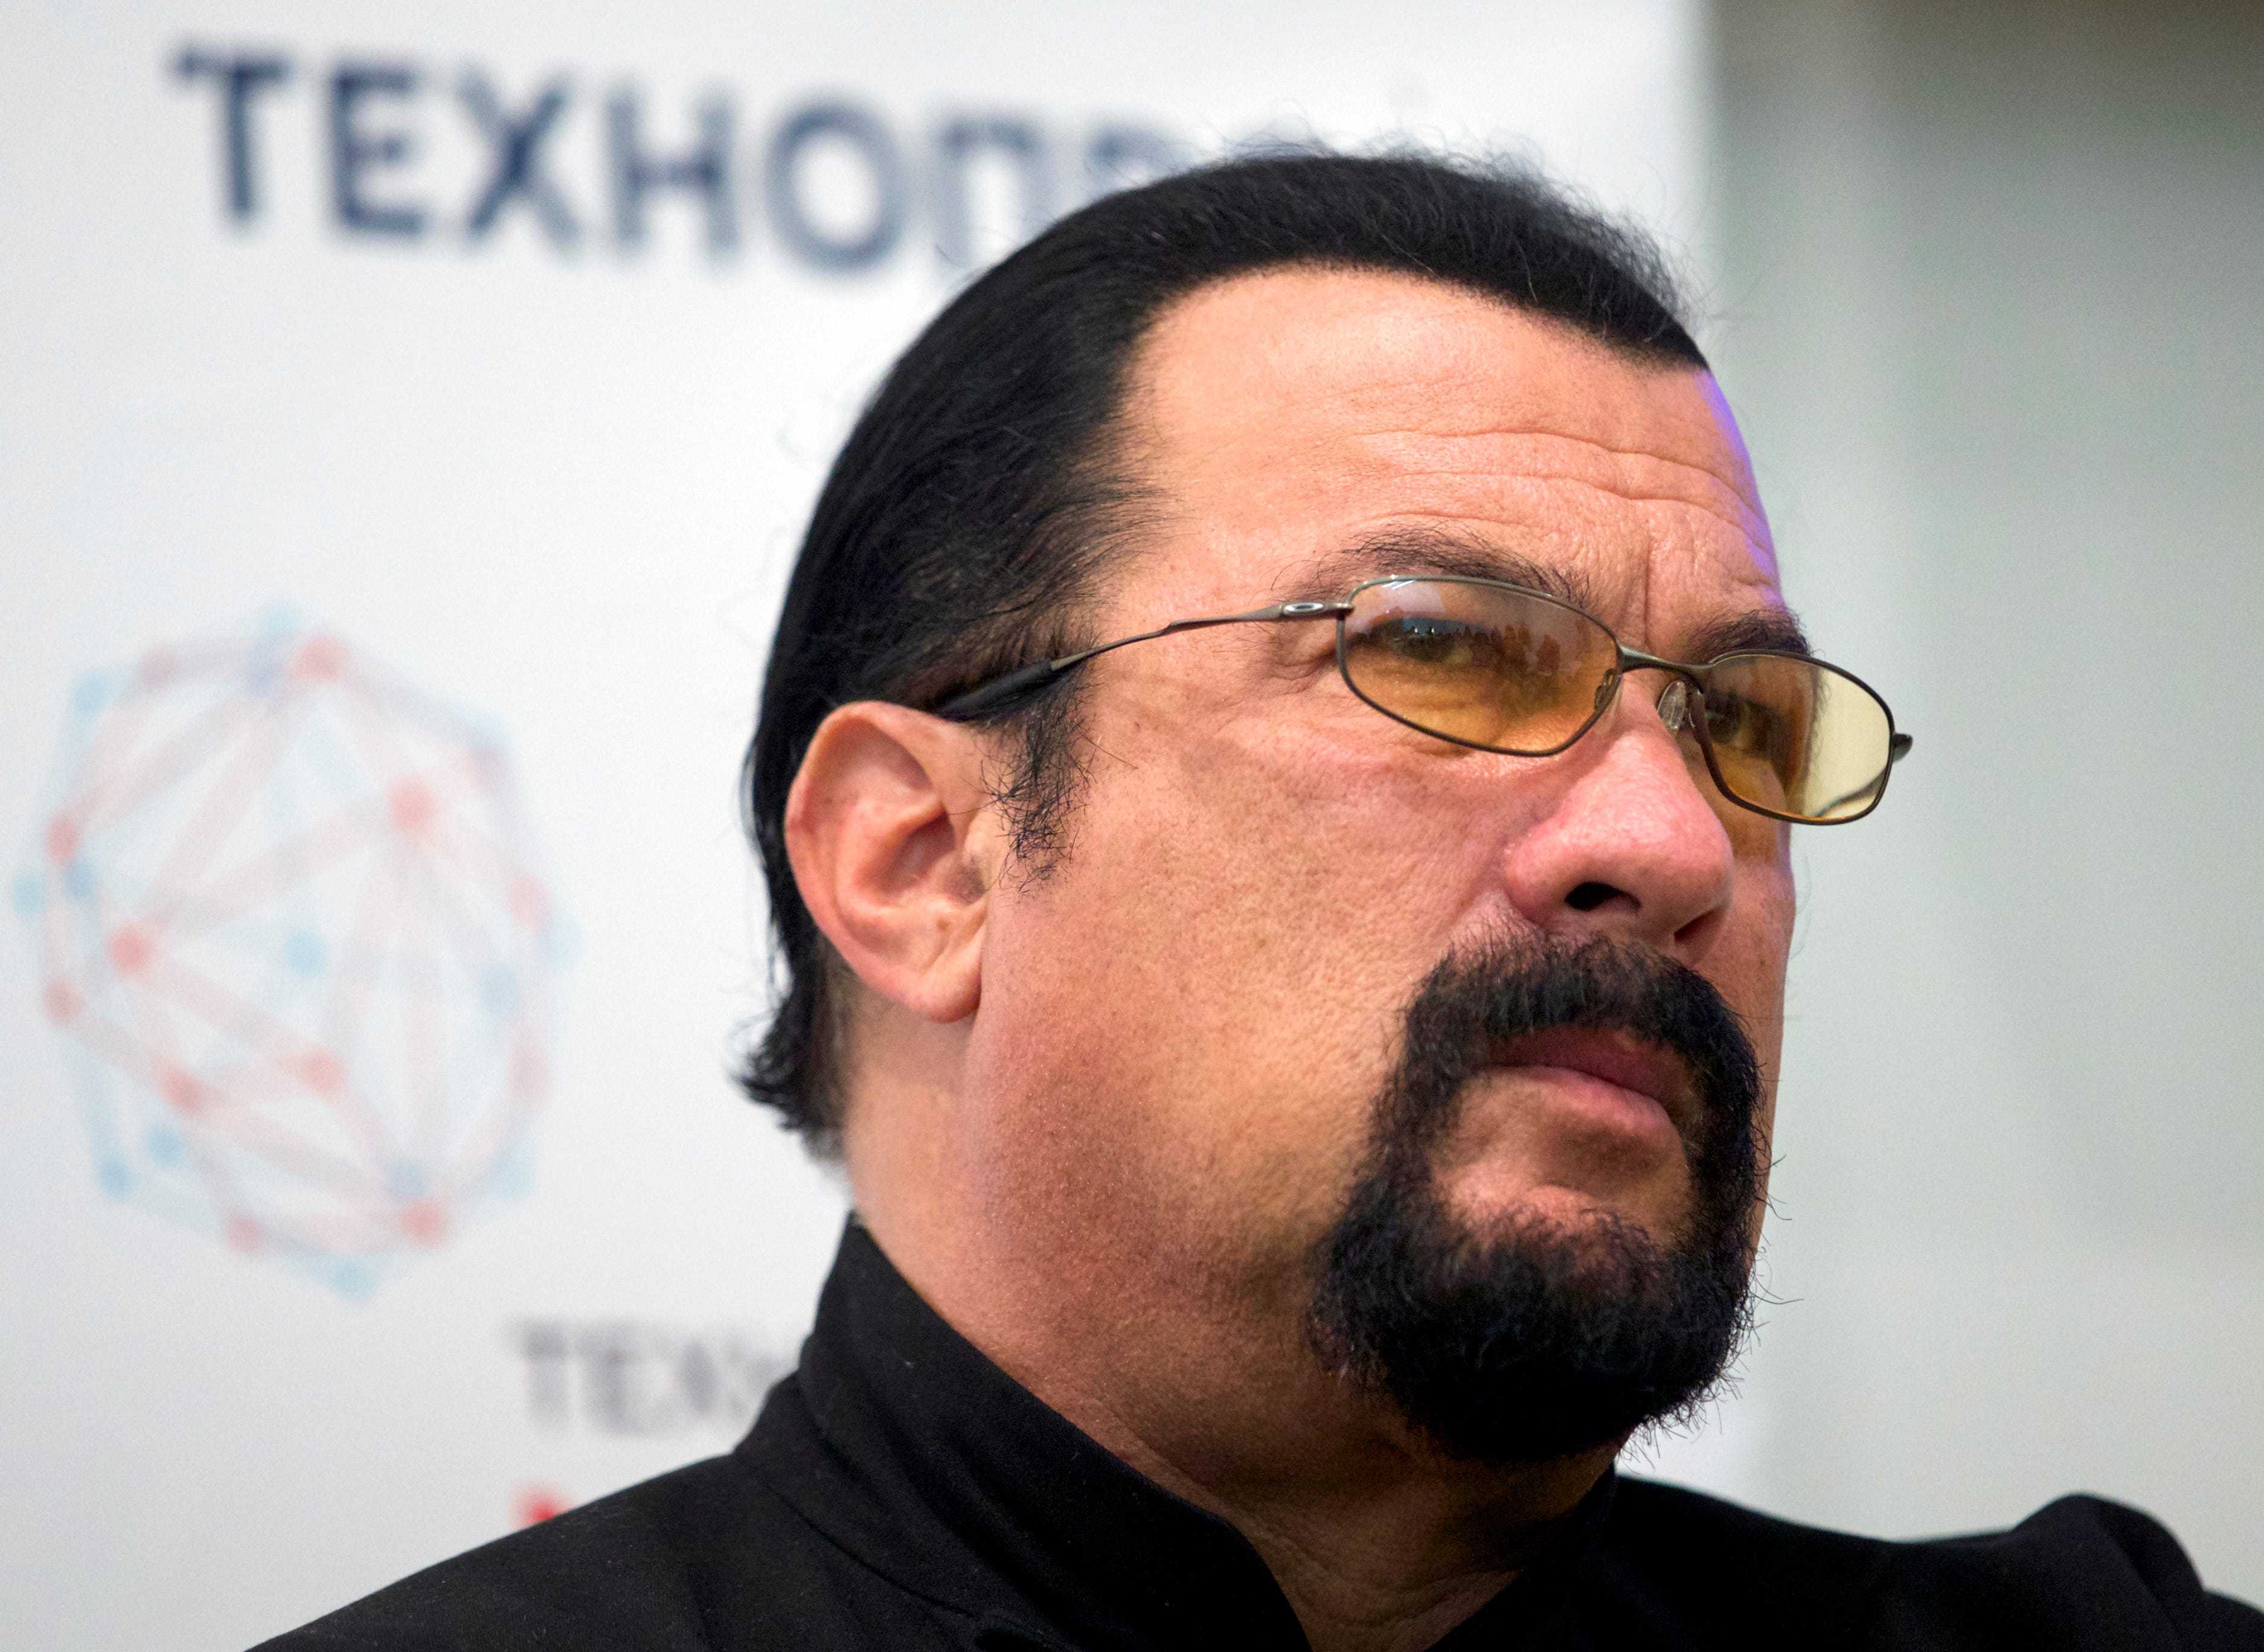 Steven Seagal storms out of